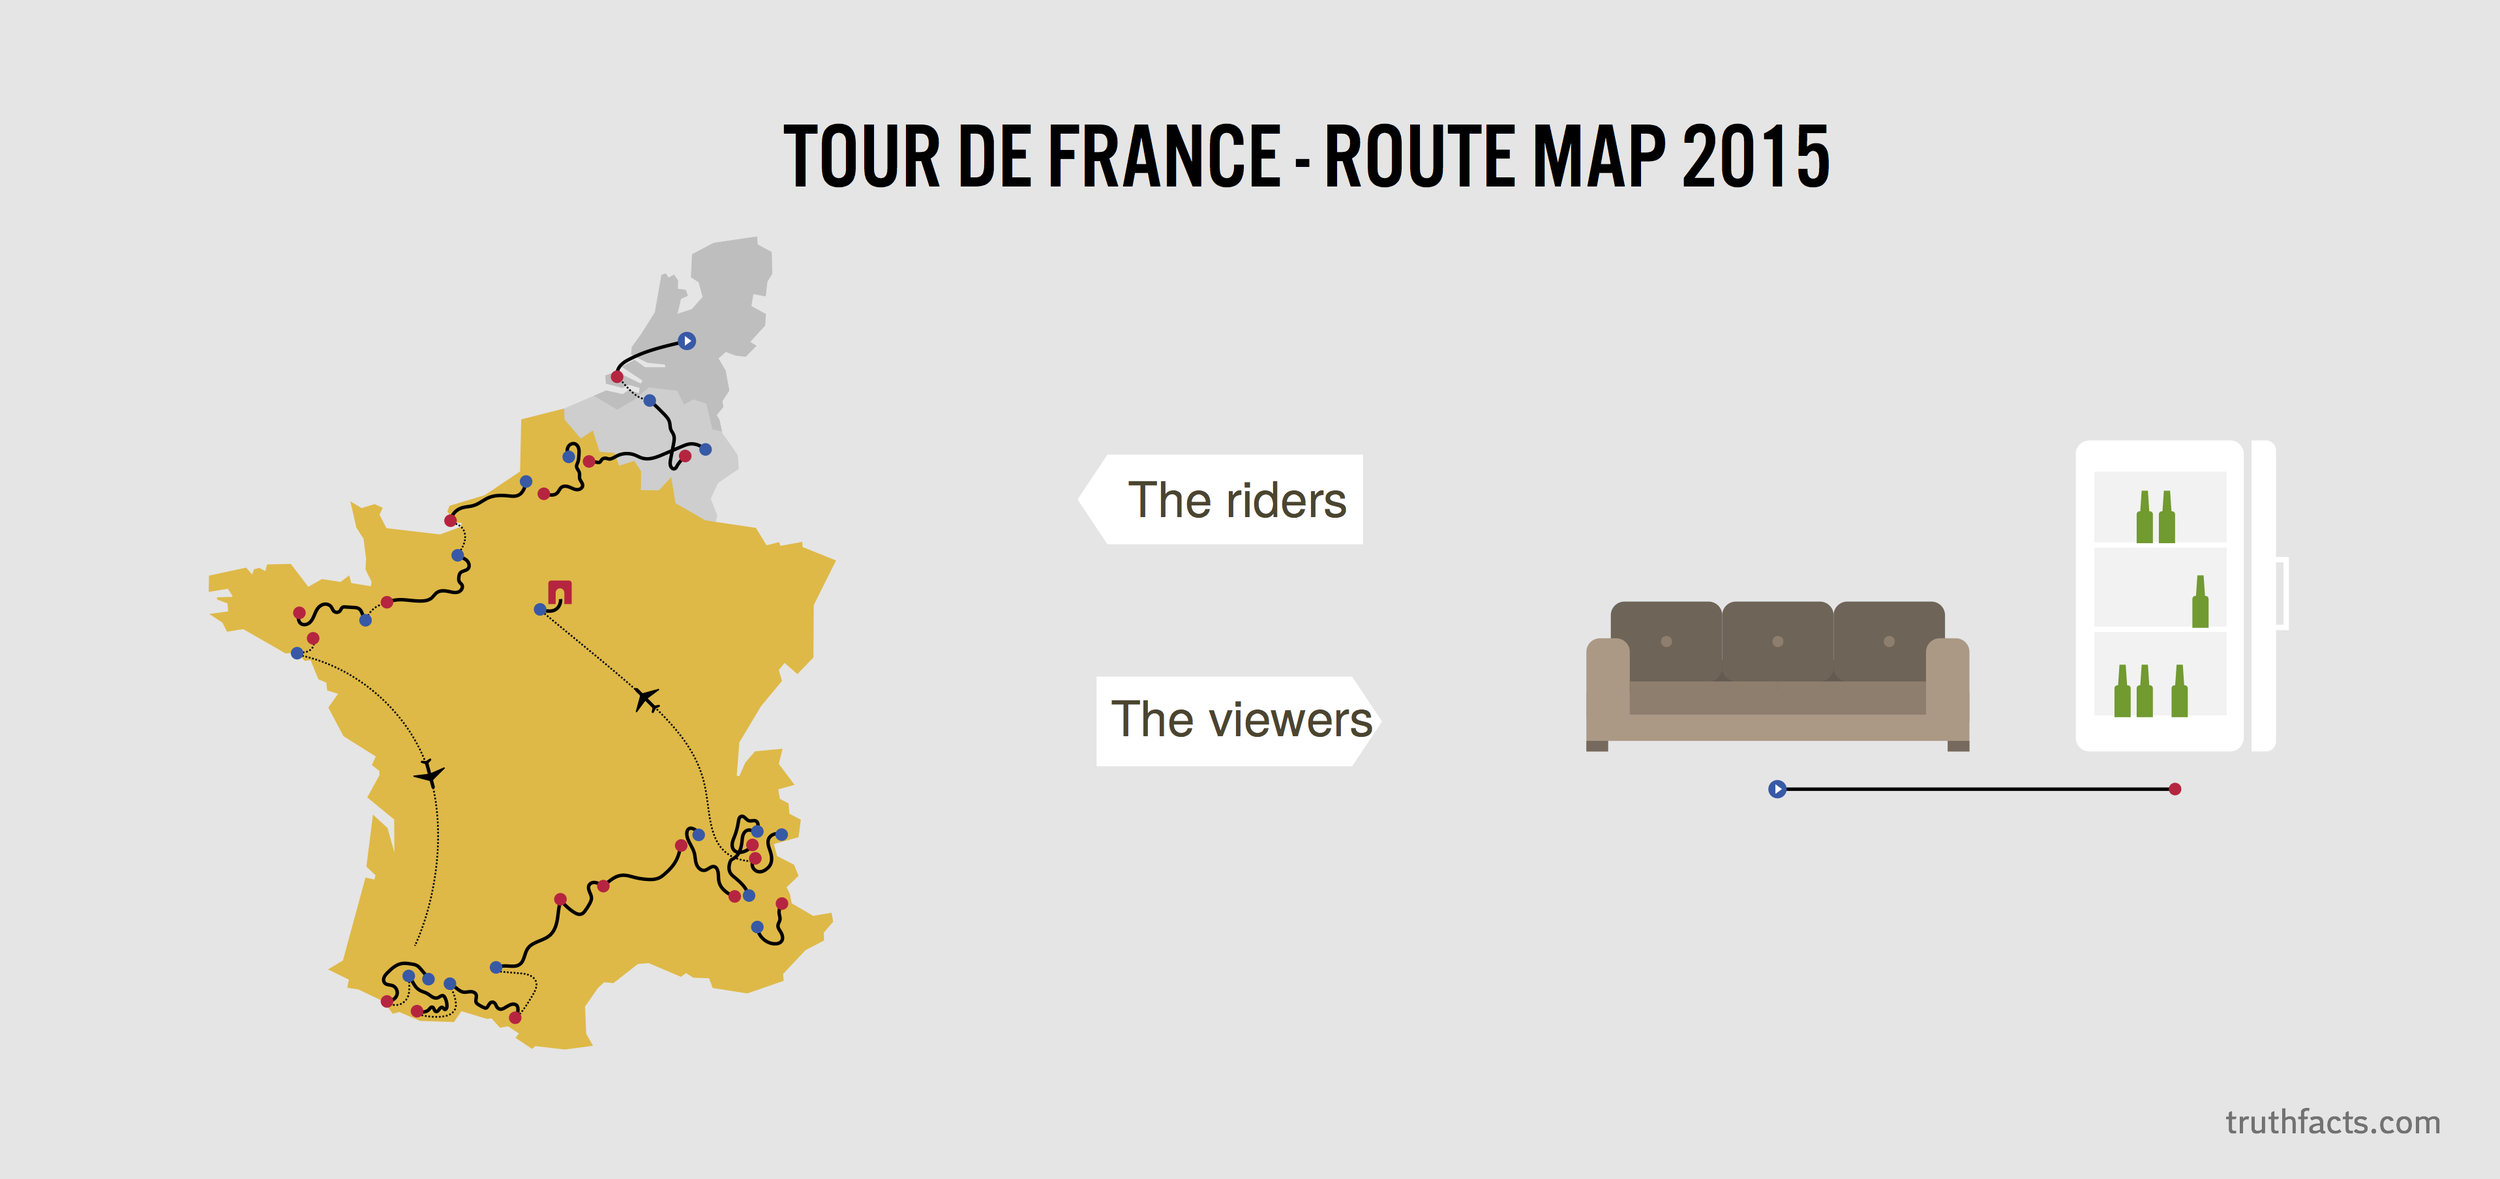 Tour de france - route map 2015